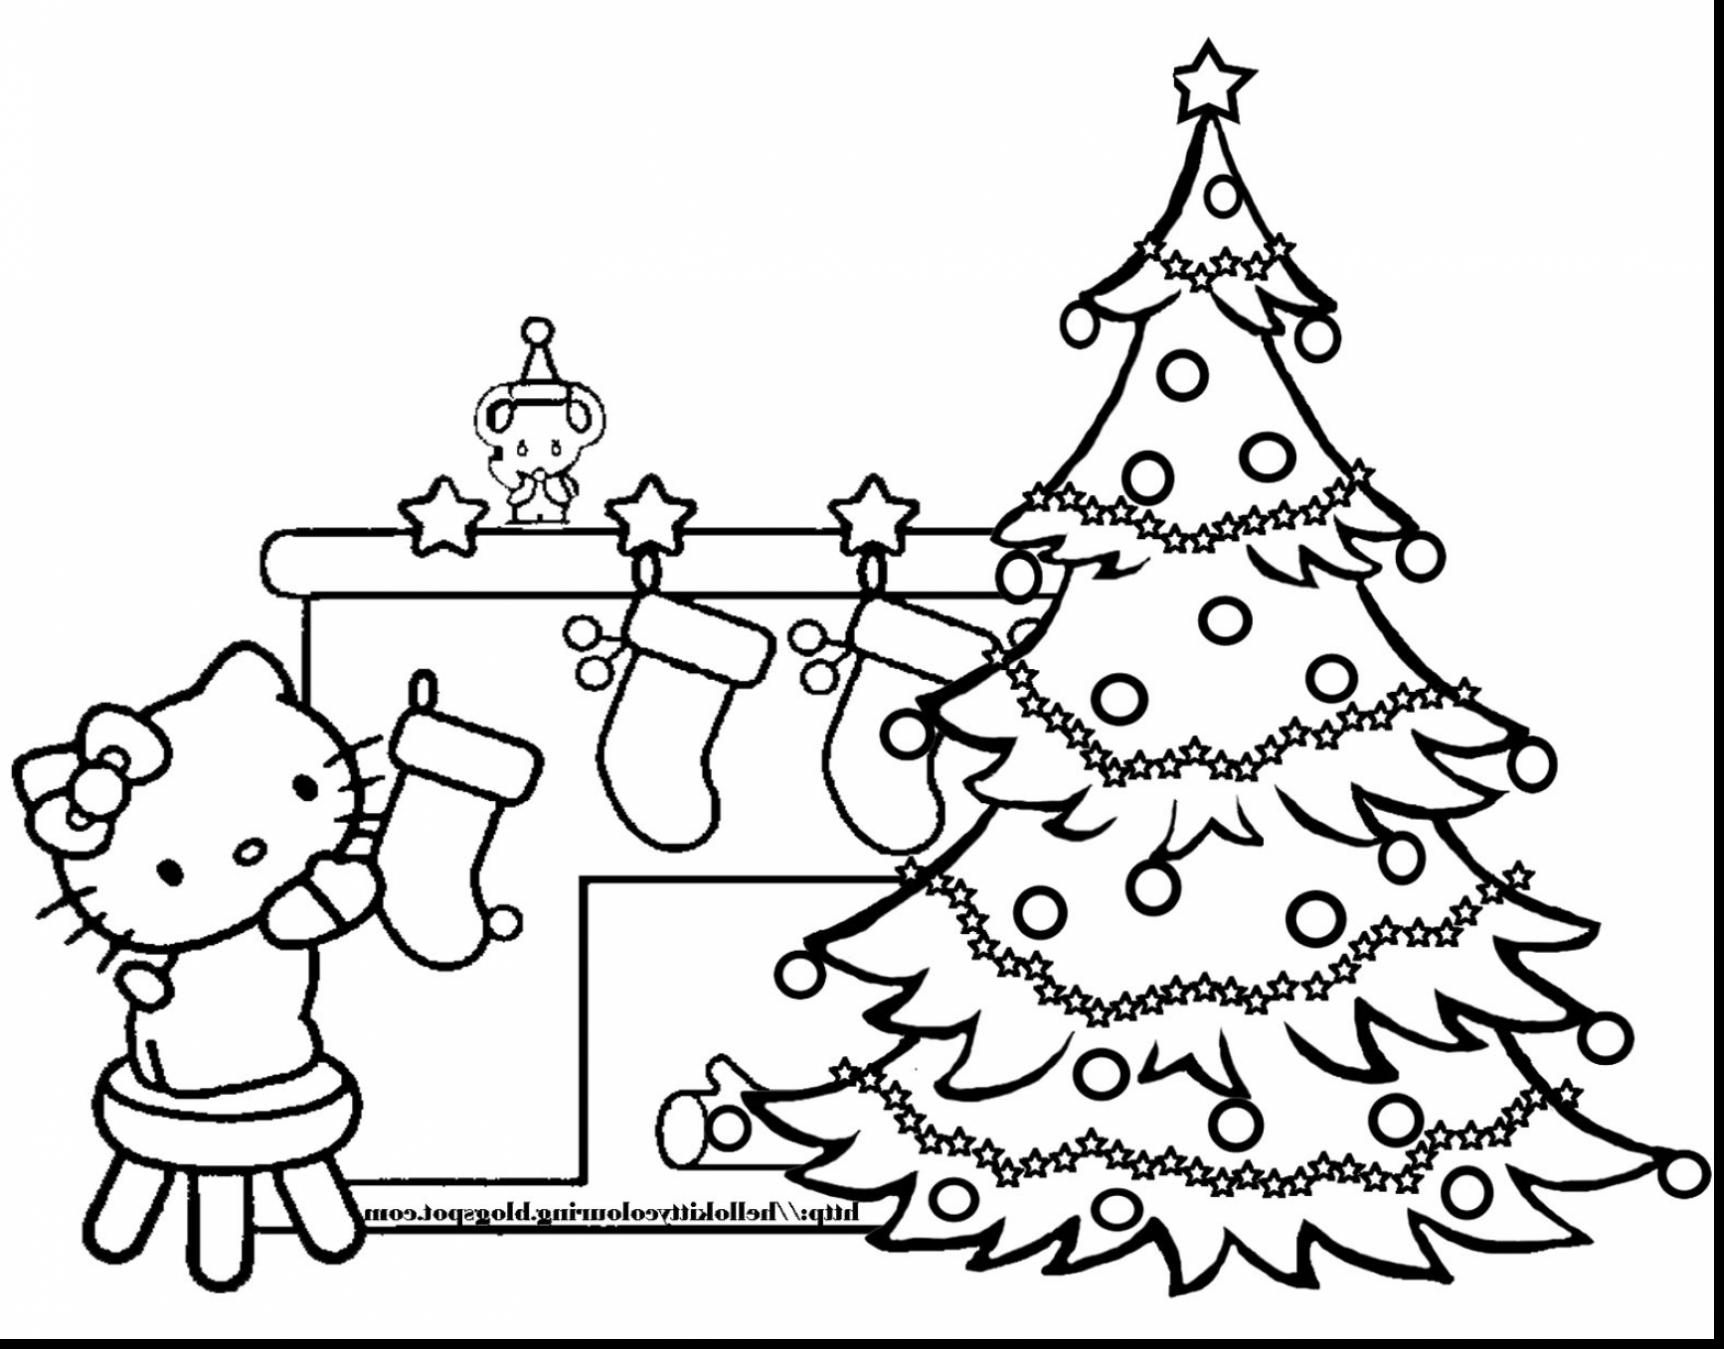 1724x1349 Christmas Ornaments Coloring Pages Collection Free Coloring